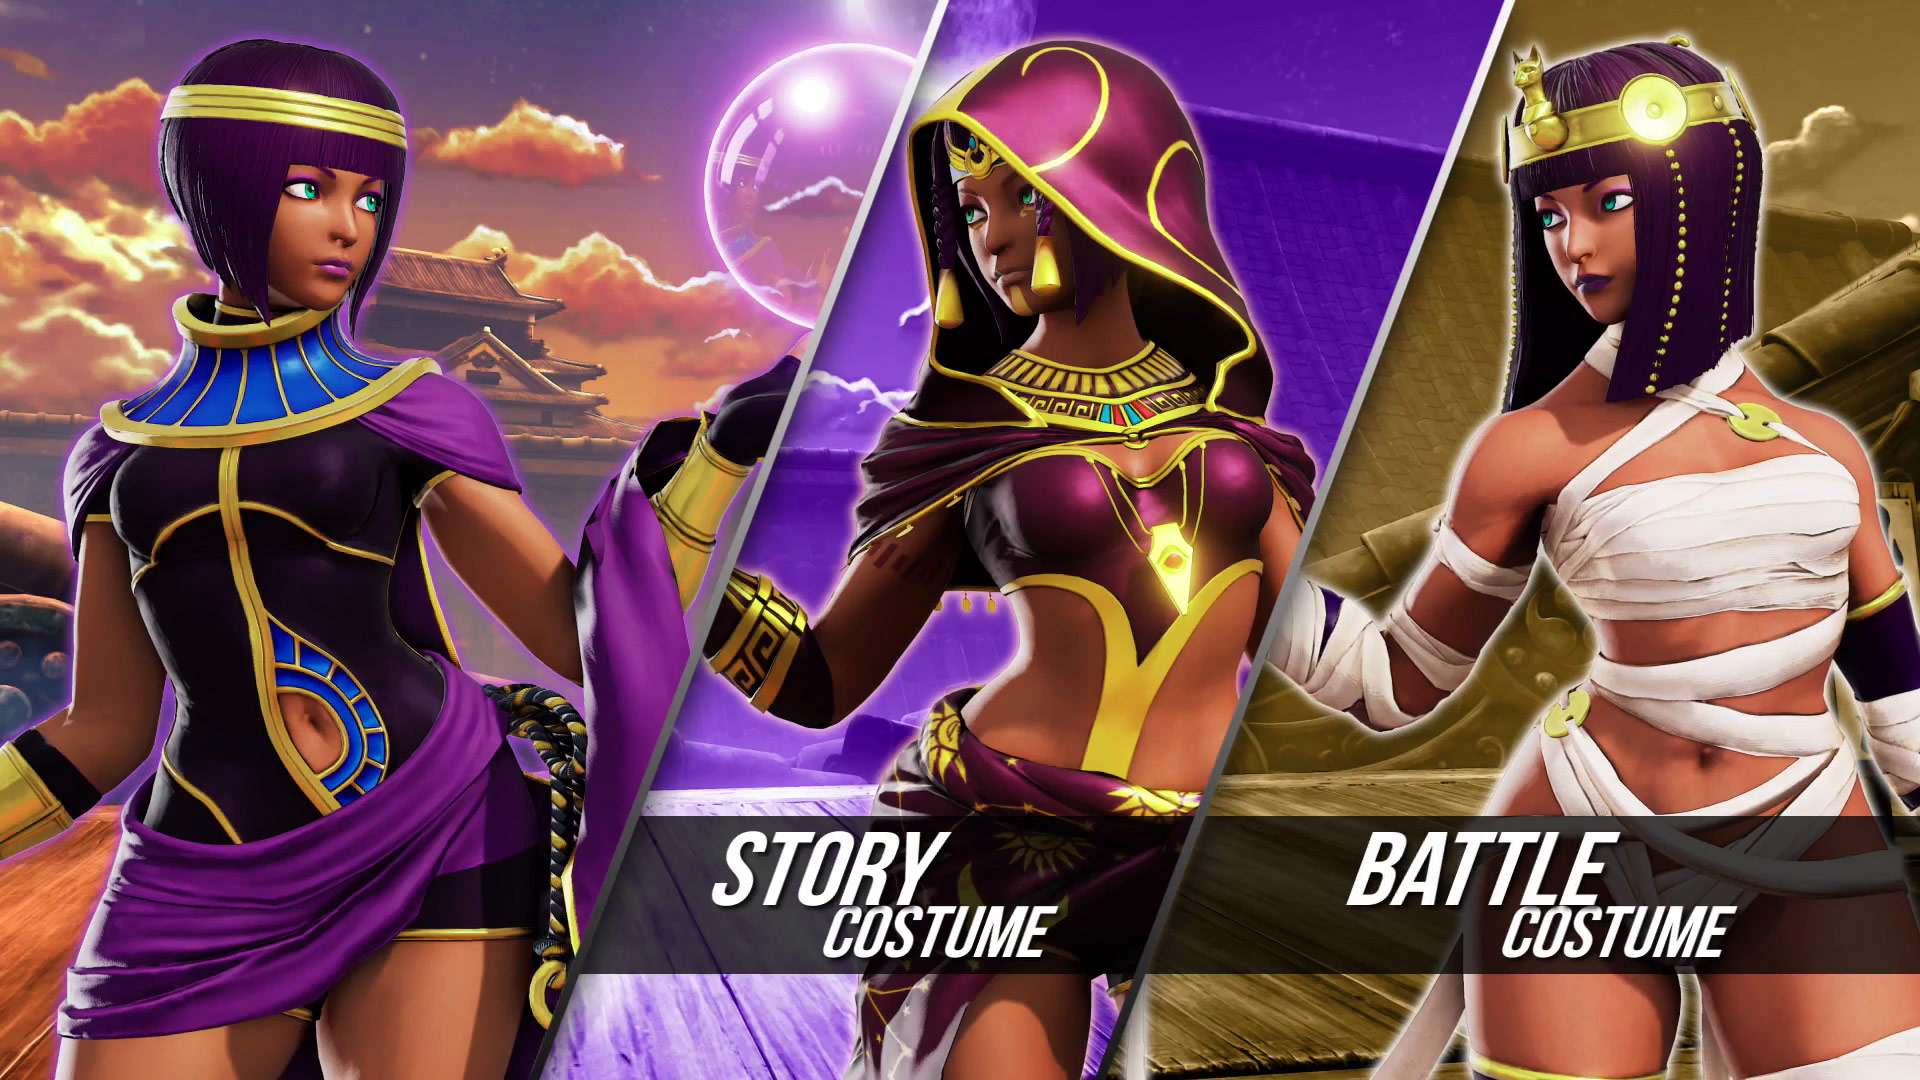 Menat announced for Street Fighter 5 reveal images 1 out of 6 image gallery